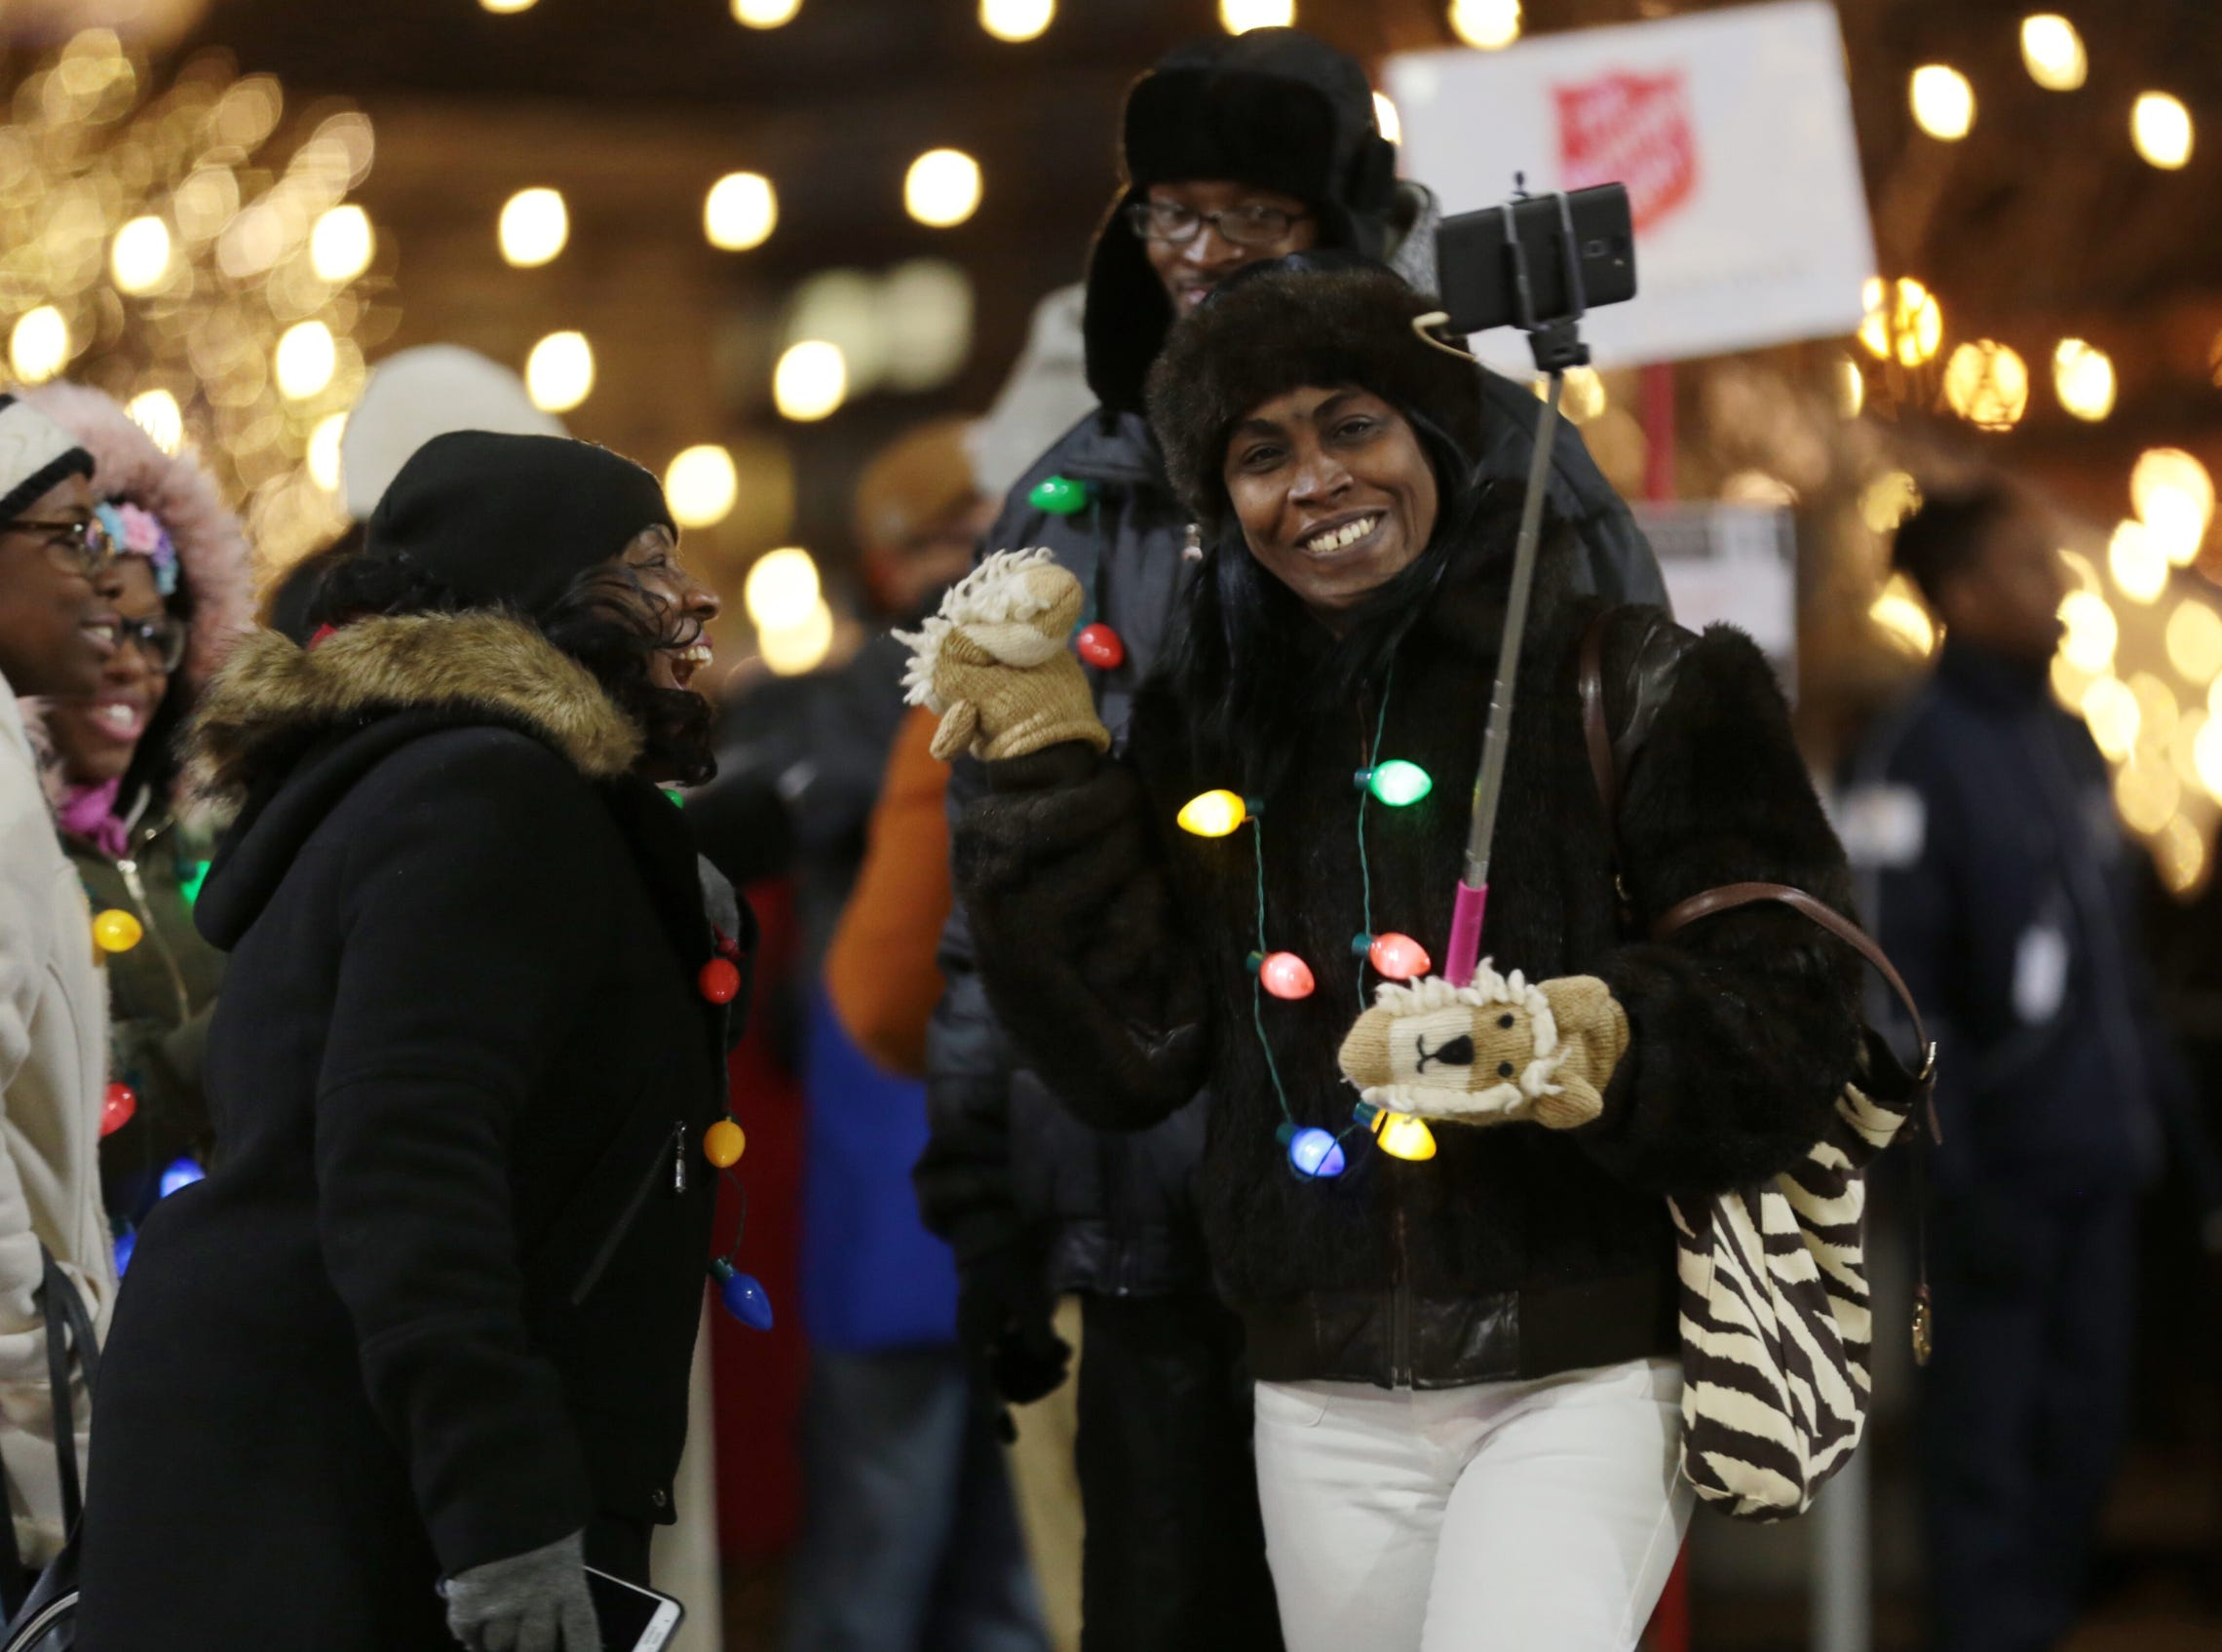 Jenell Brown of Detroit takes a selfie while gathered with family during the annual tree lighting event at Campus Martius Park in downtown Detroit on Friday, November 16, 2018.